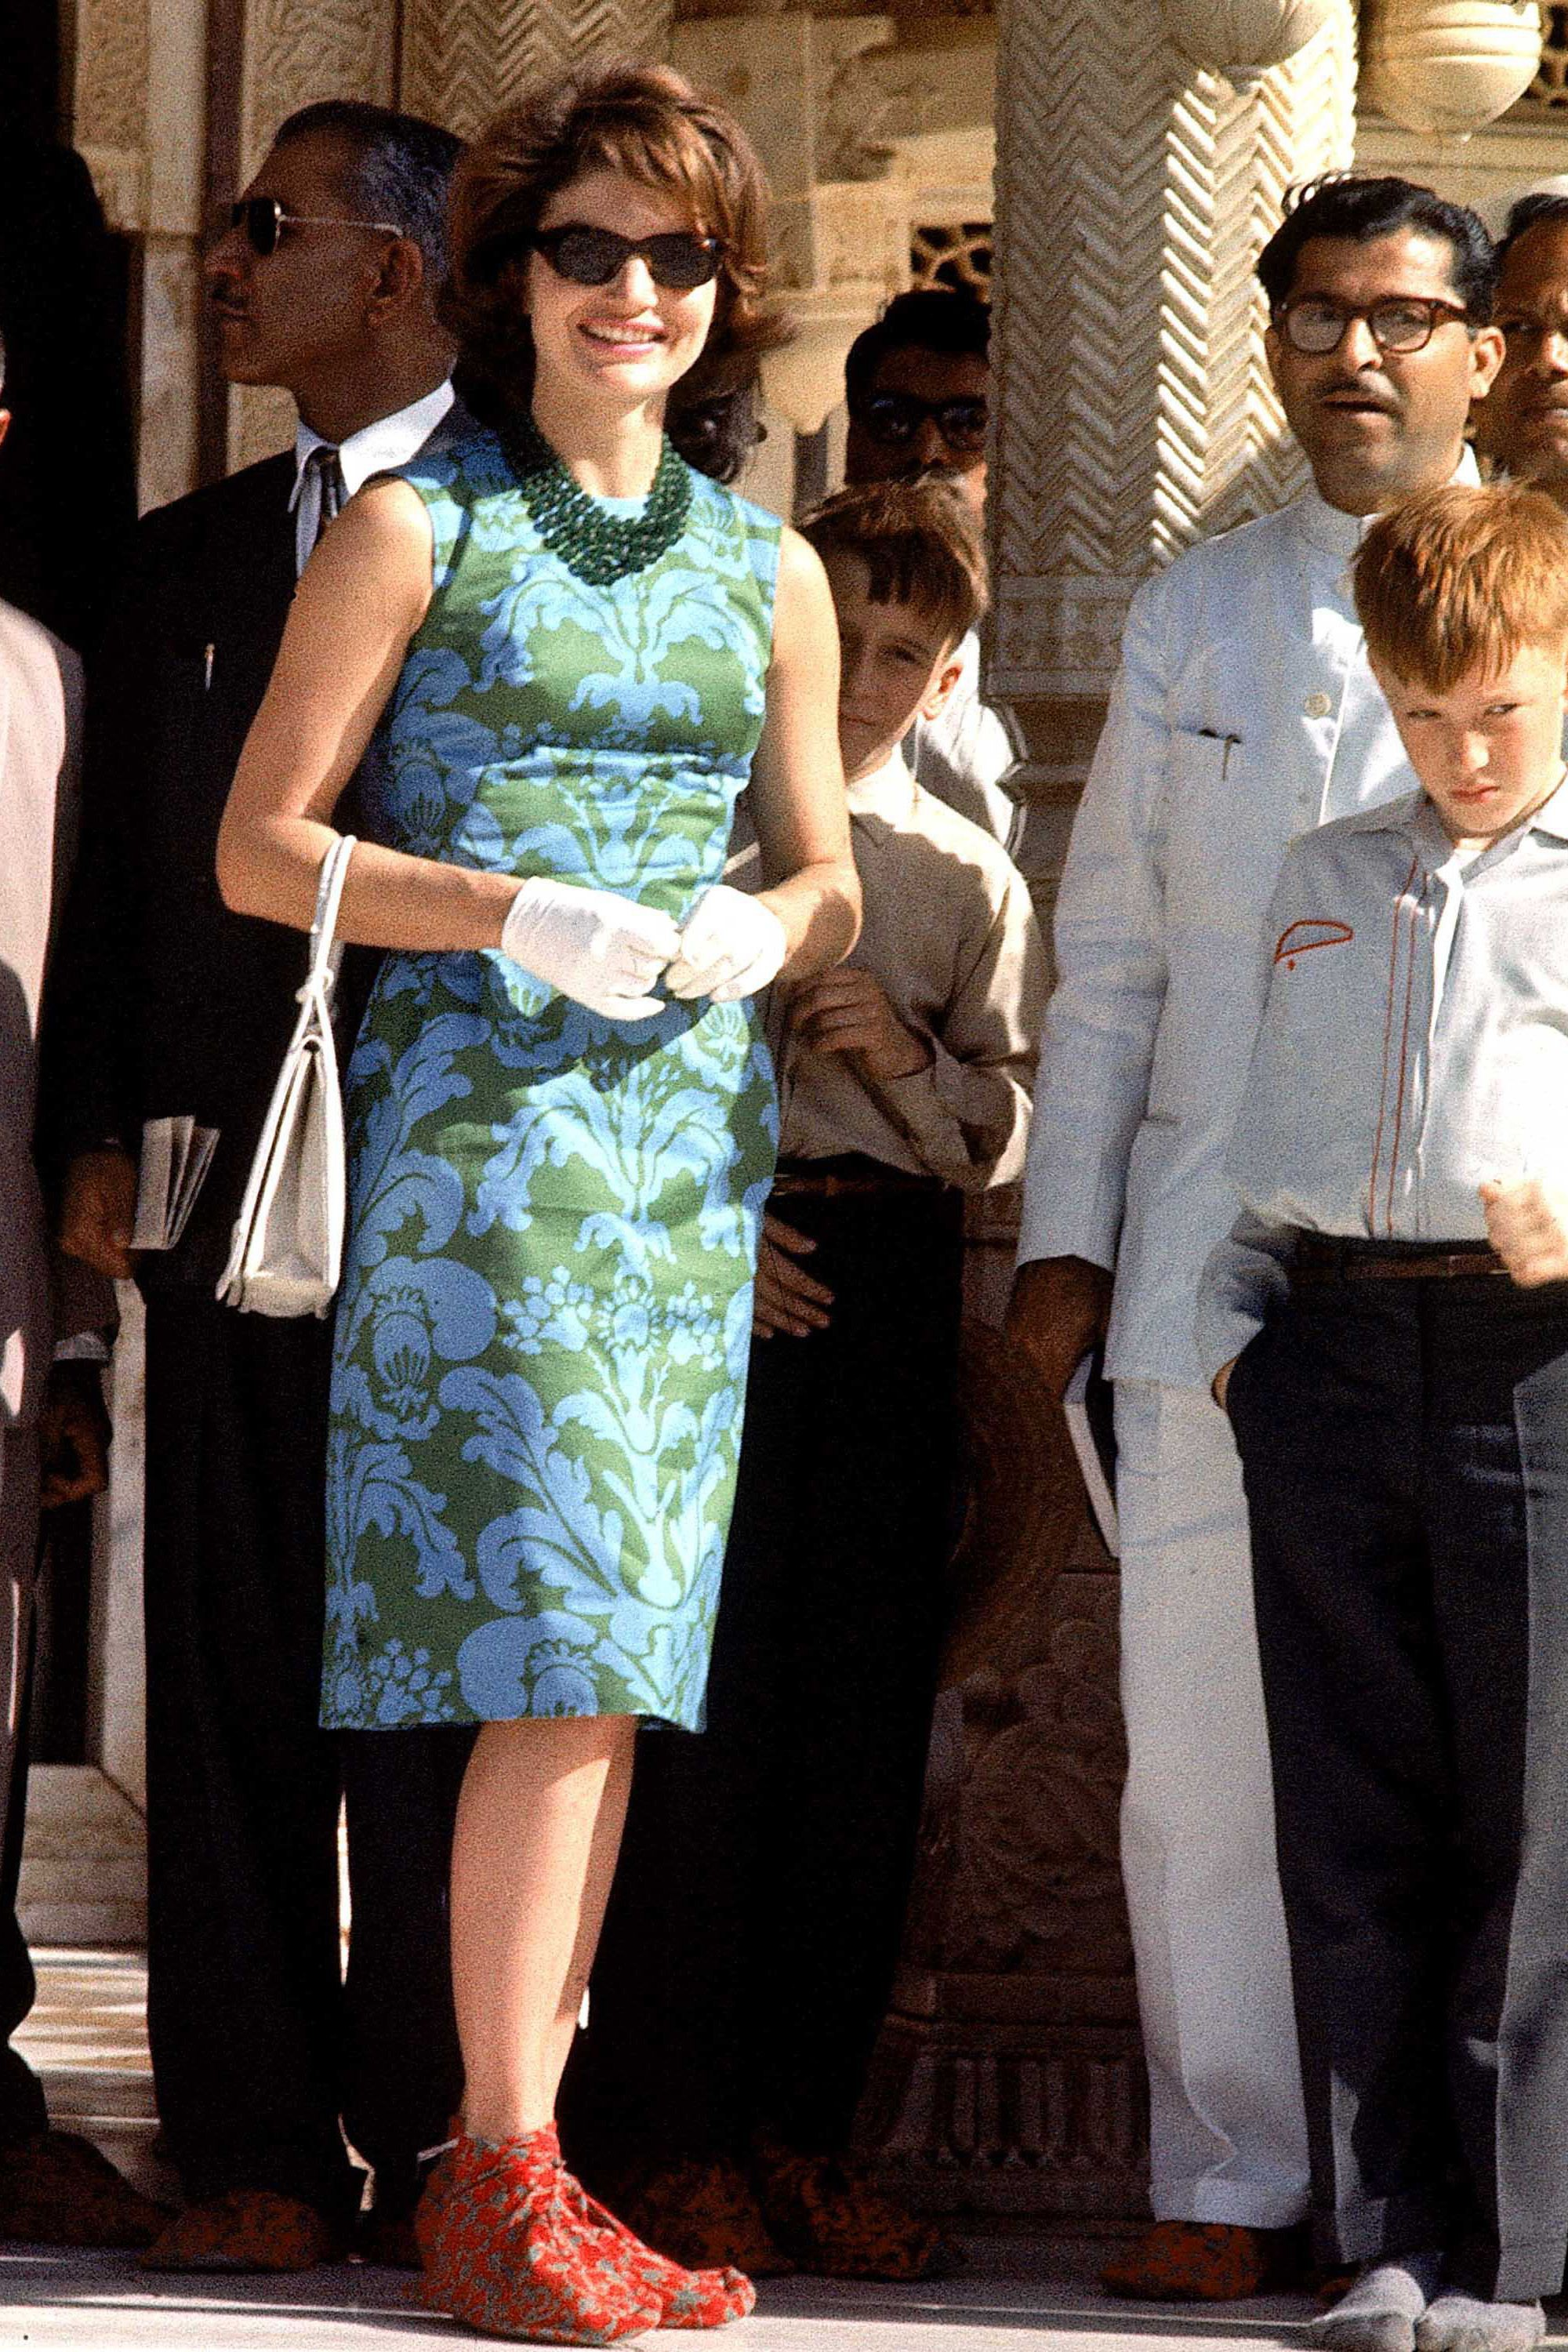 hbz-jackie-kennedy-1962-gettyimages-50336481-1532026939